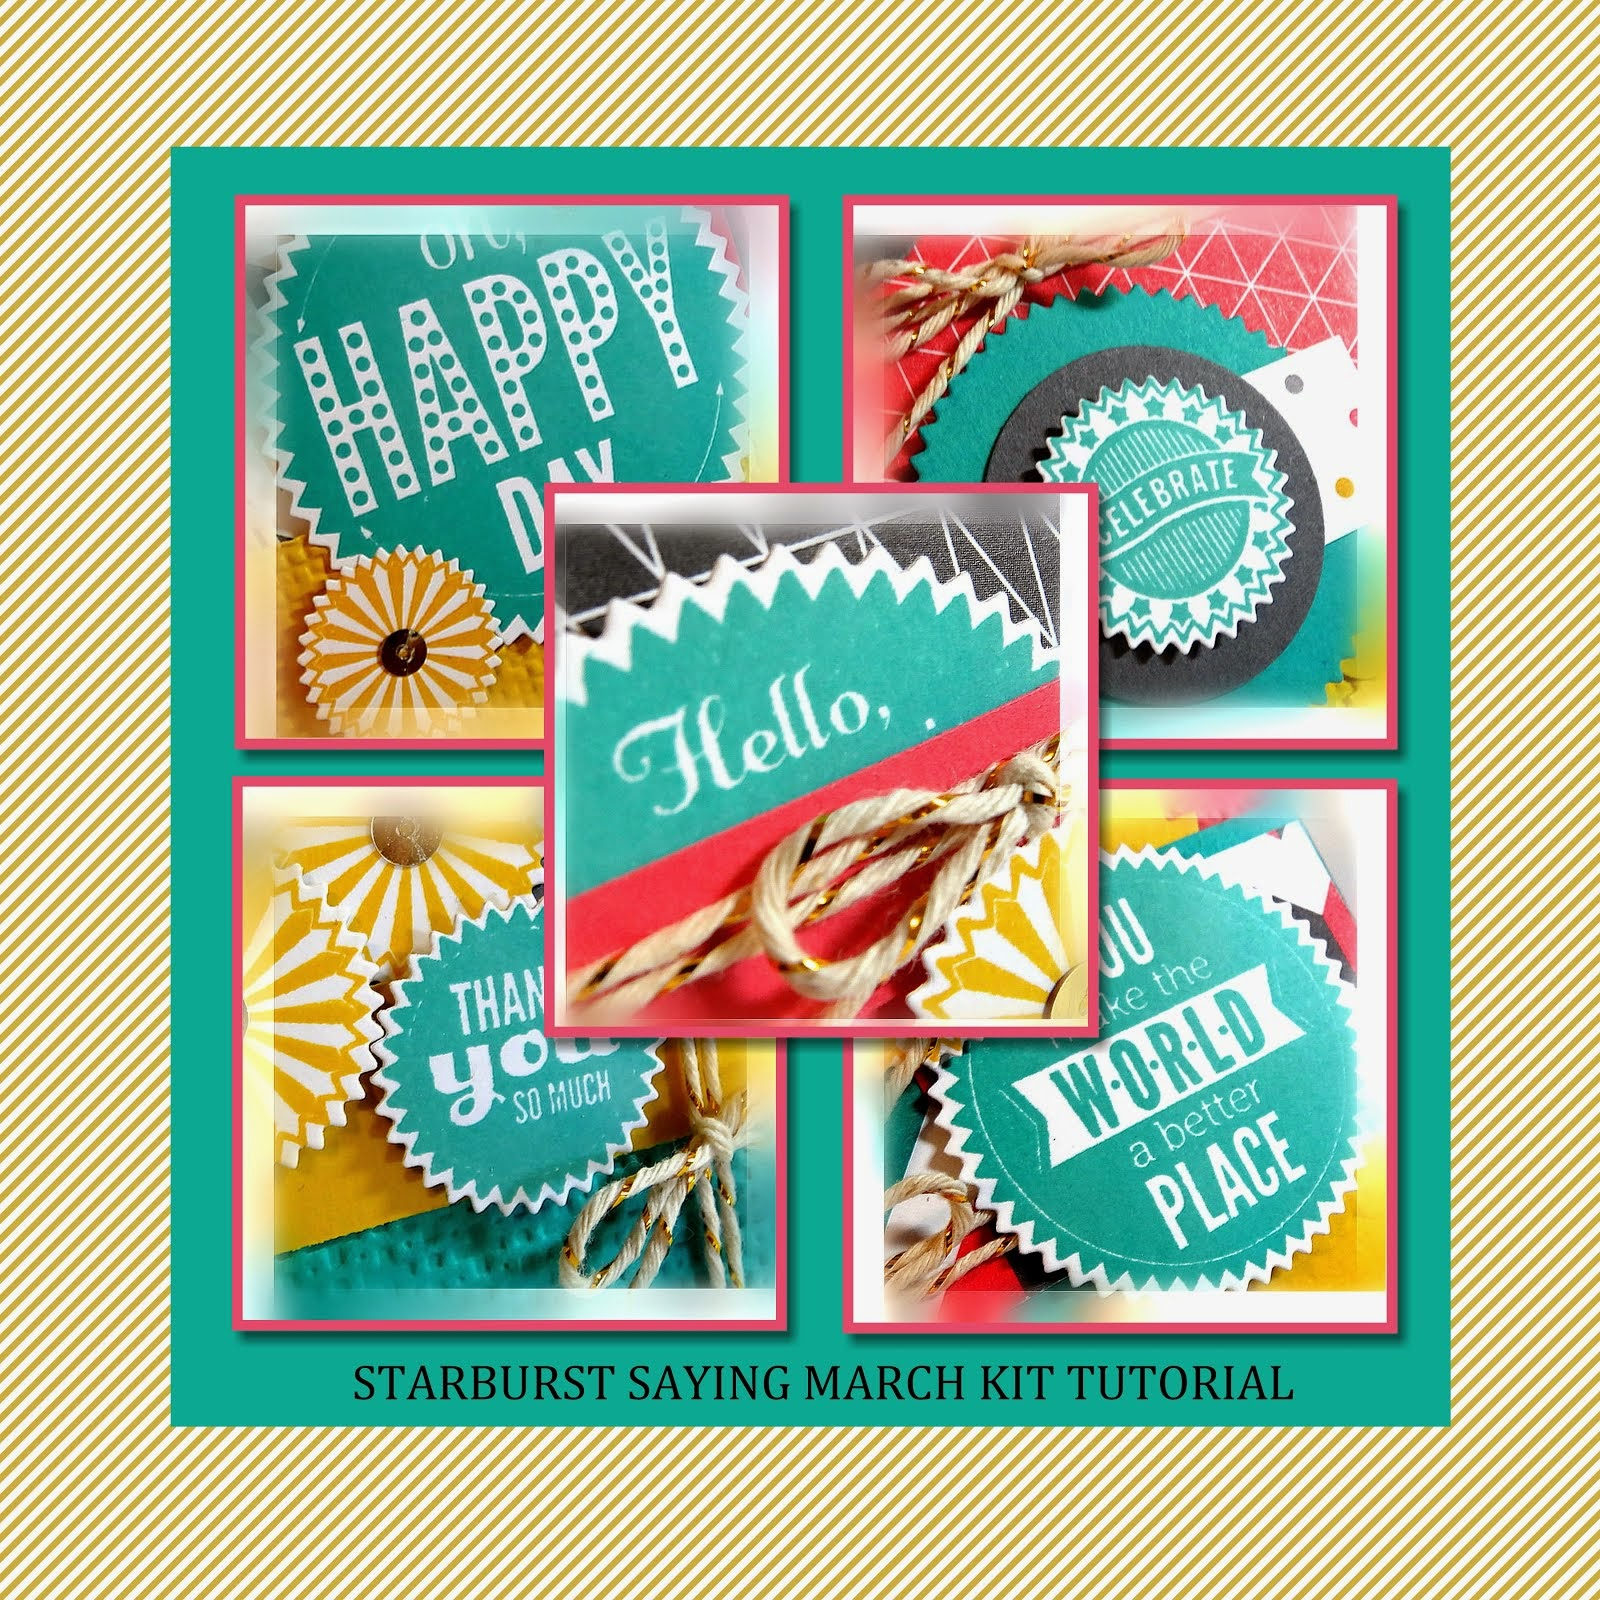 March 2014 Starburst Sayings Tutorial